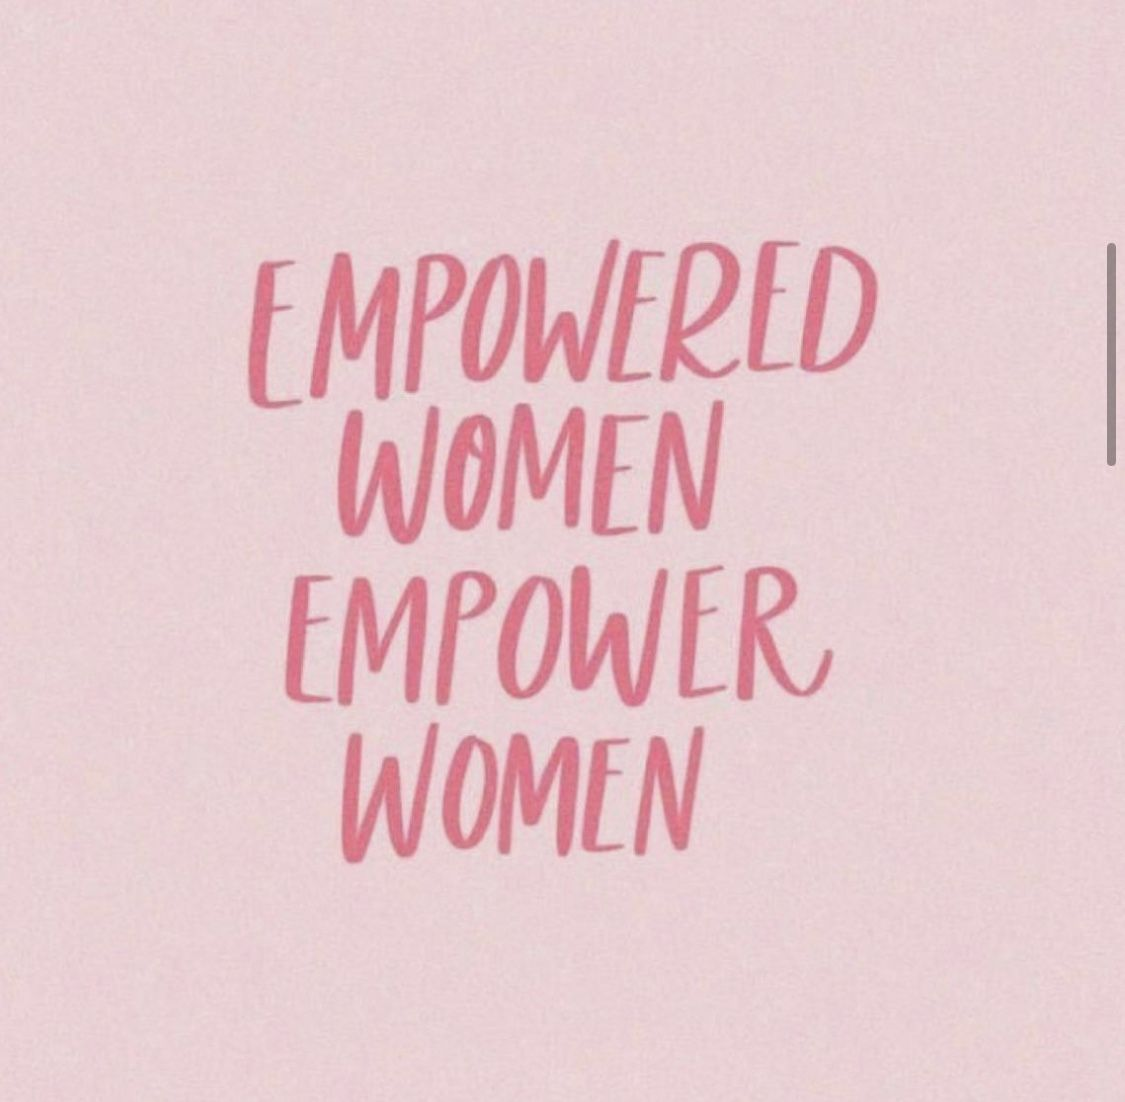 Boss women support each other- ISAL Podcast